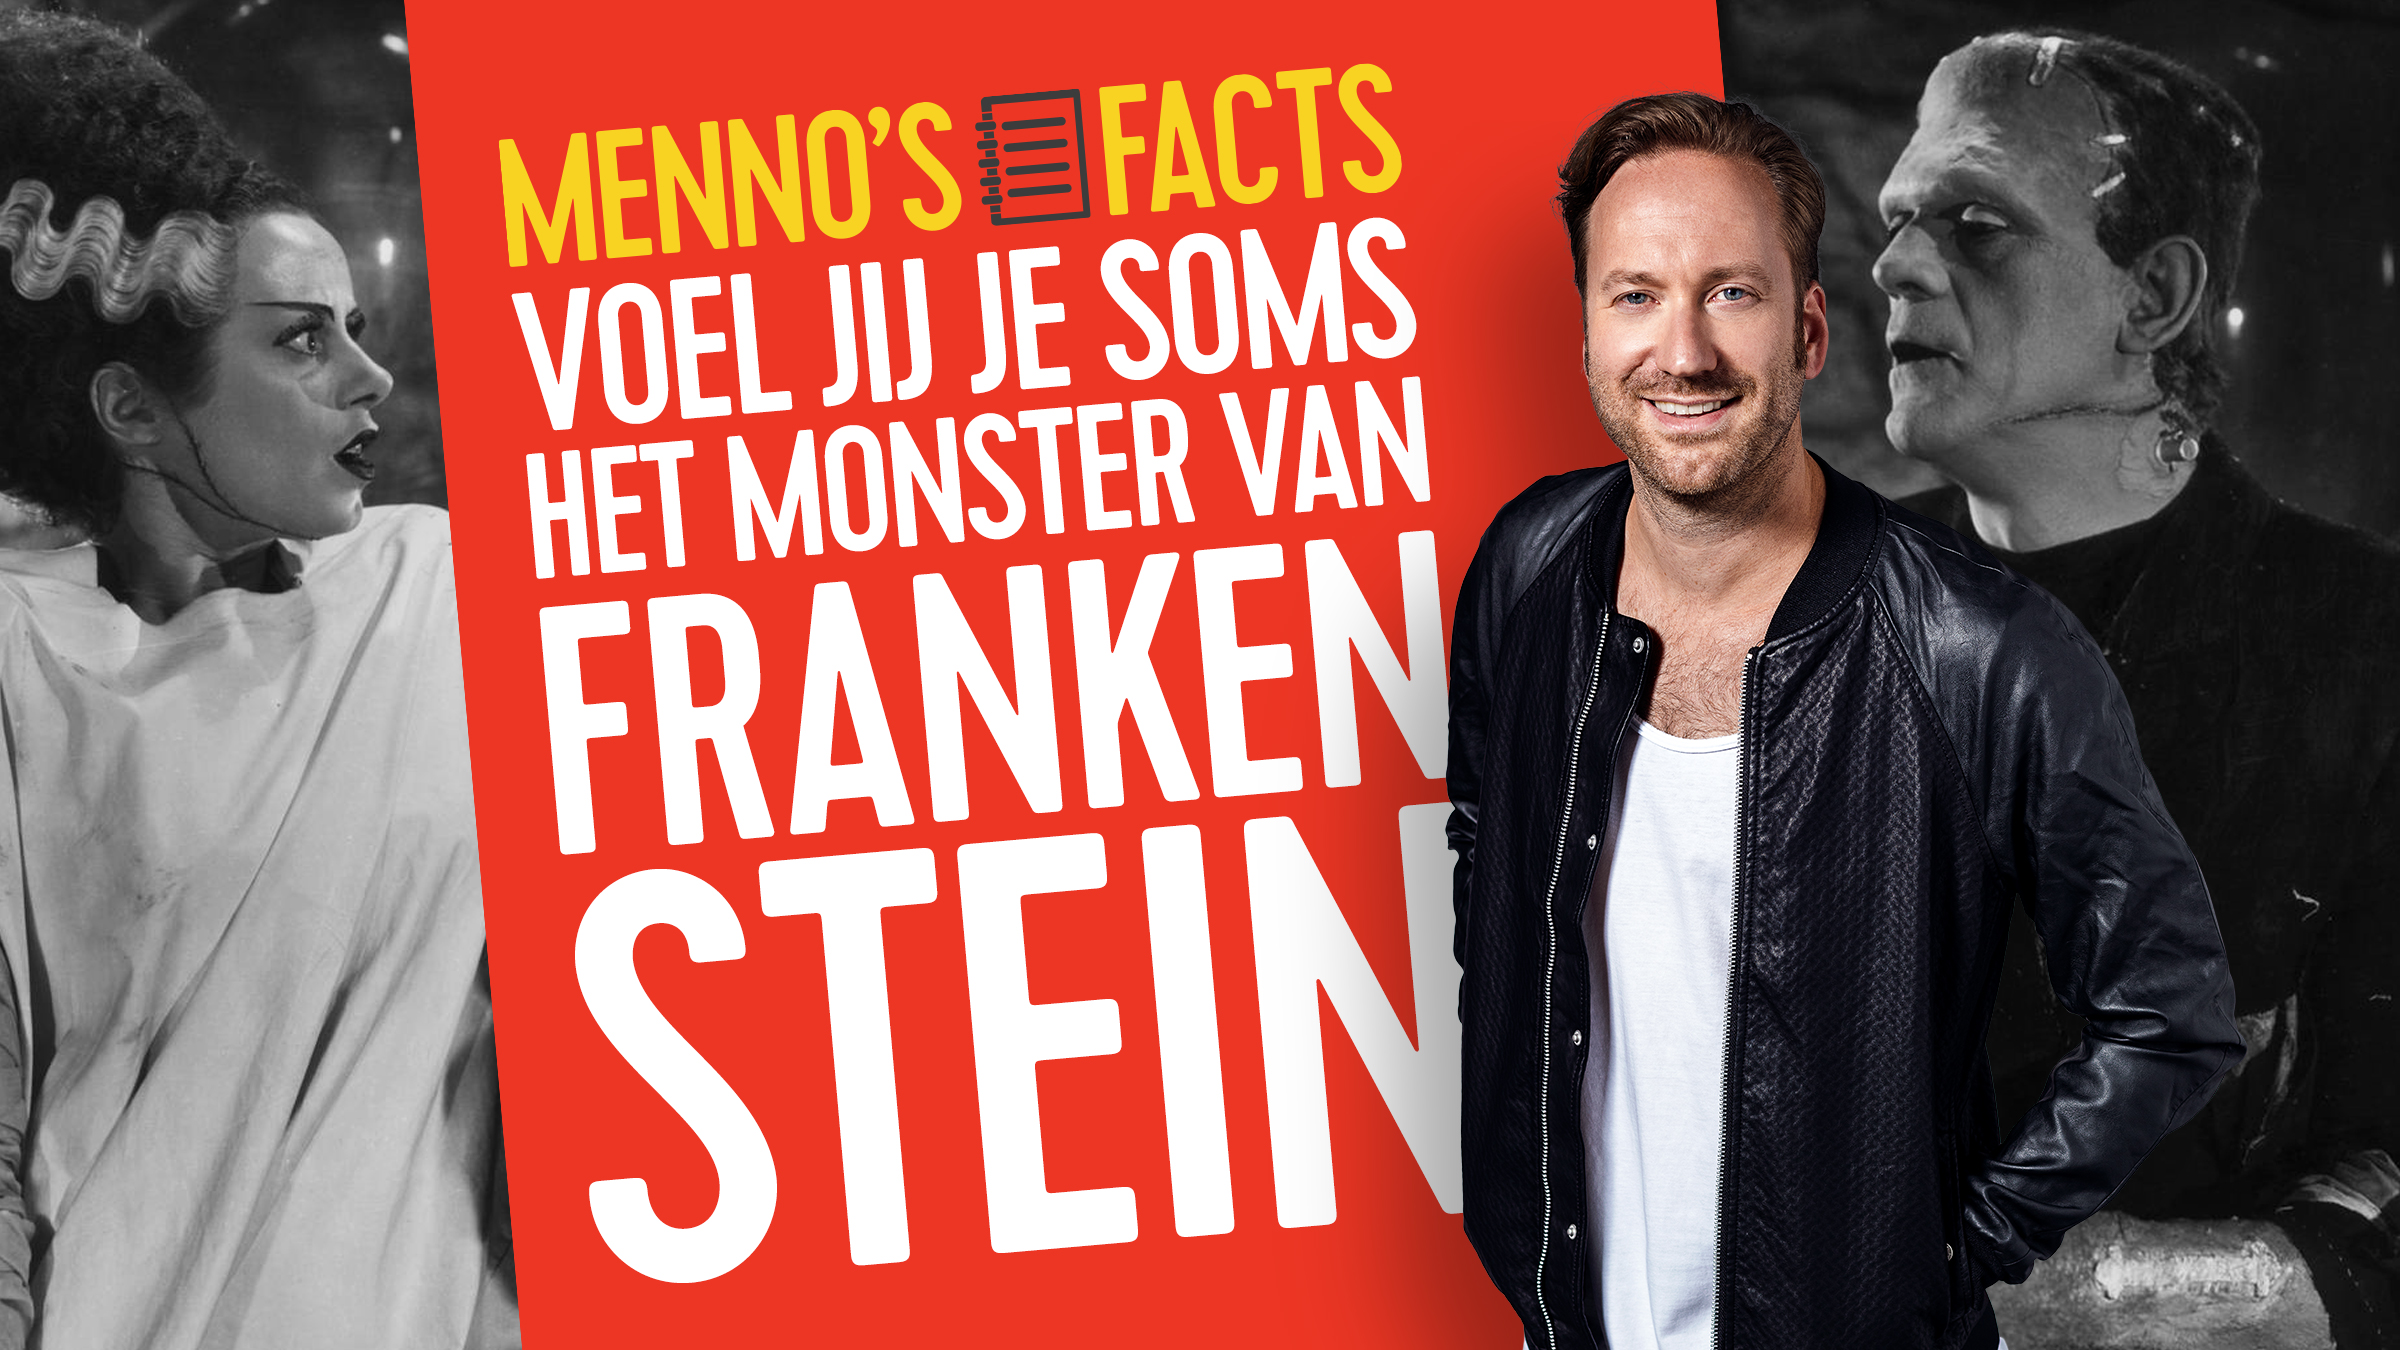 Frankenstein teaser basis mennosfacts17